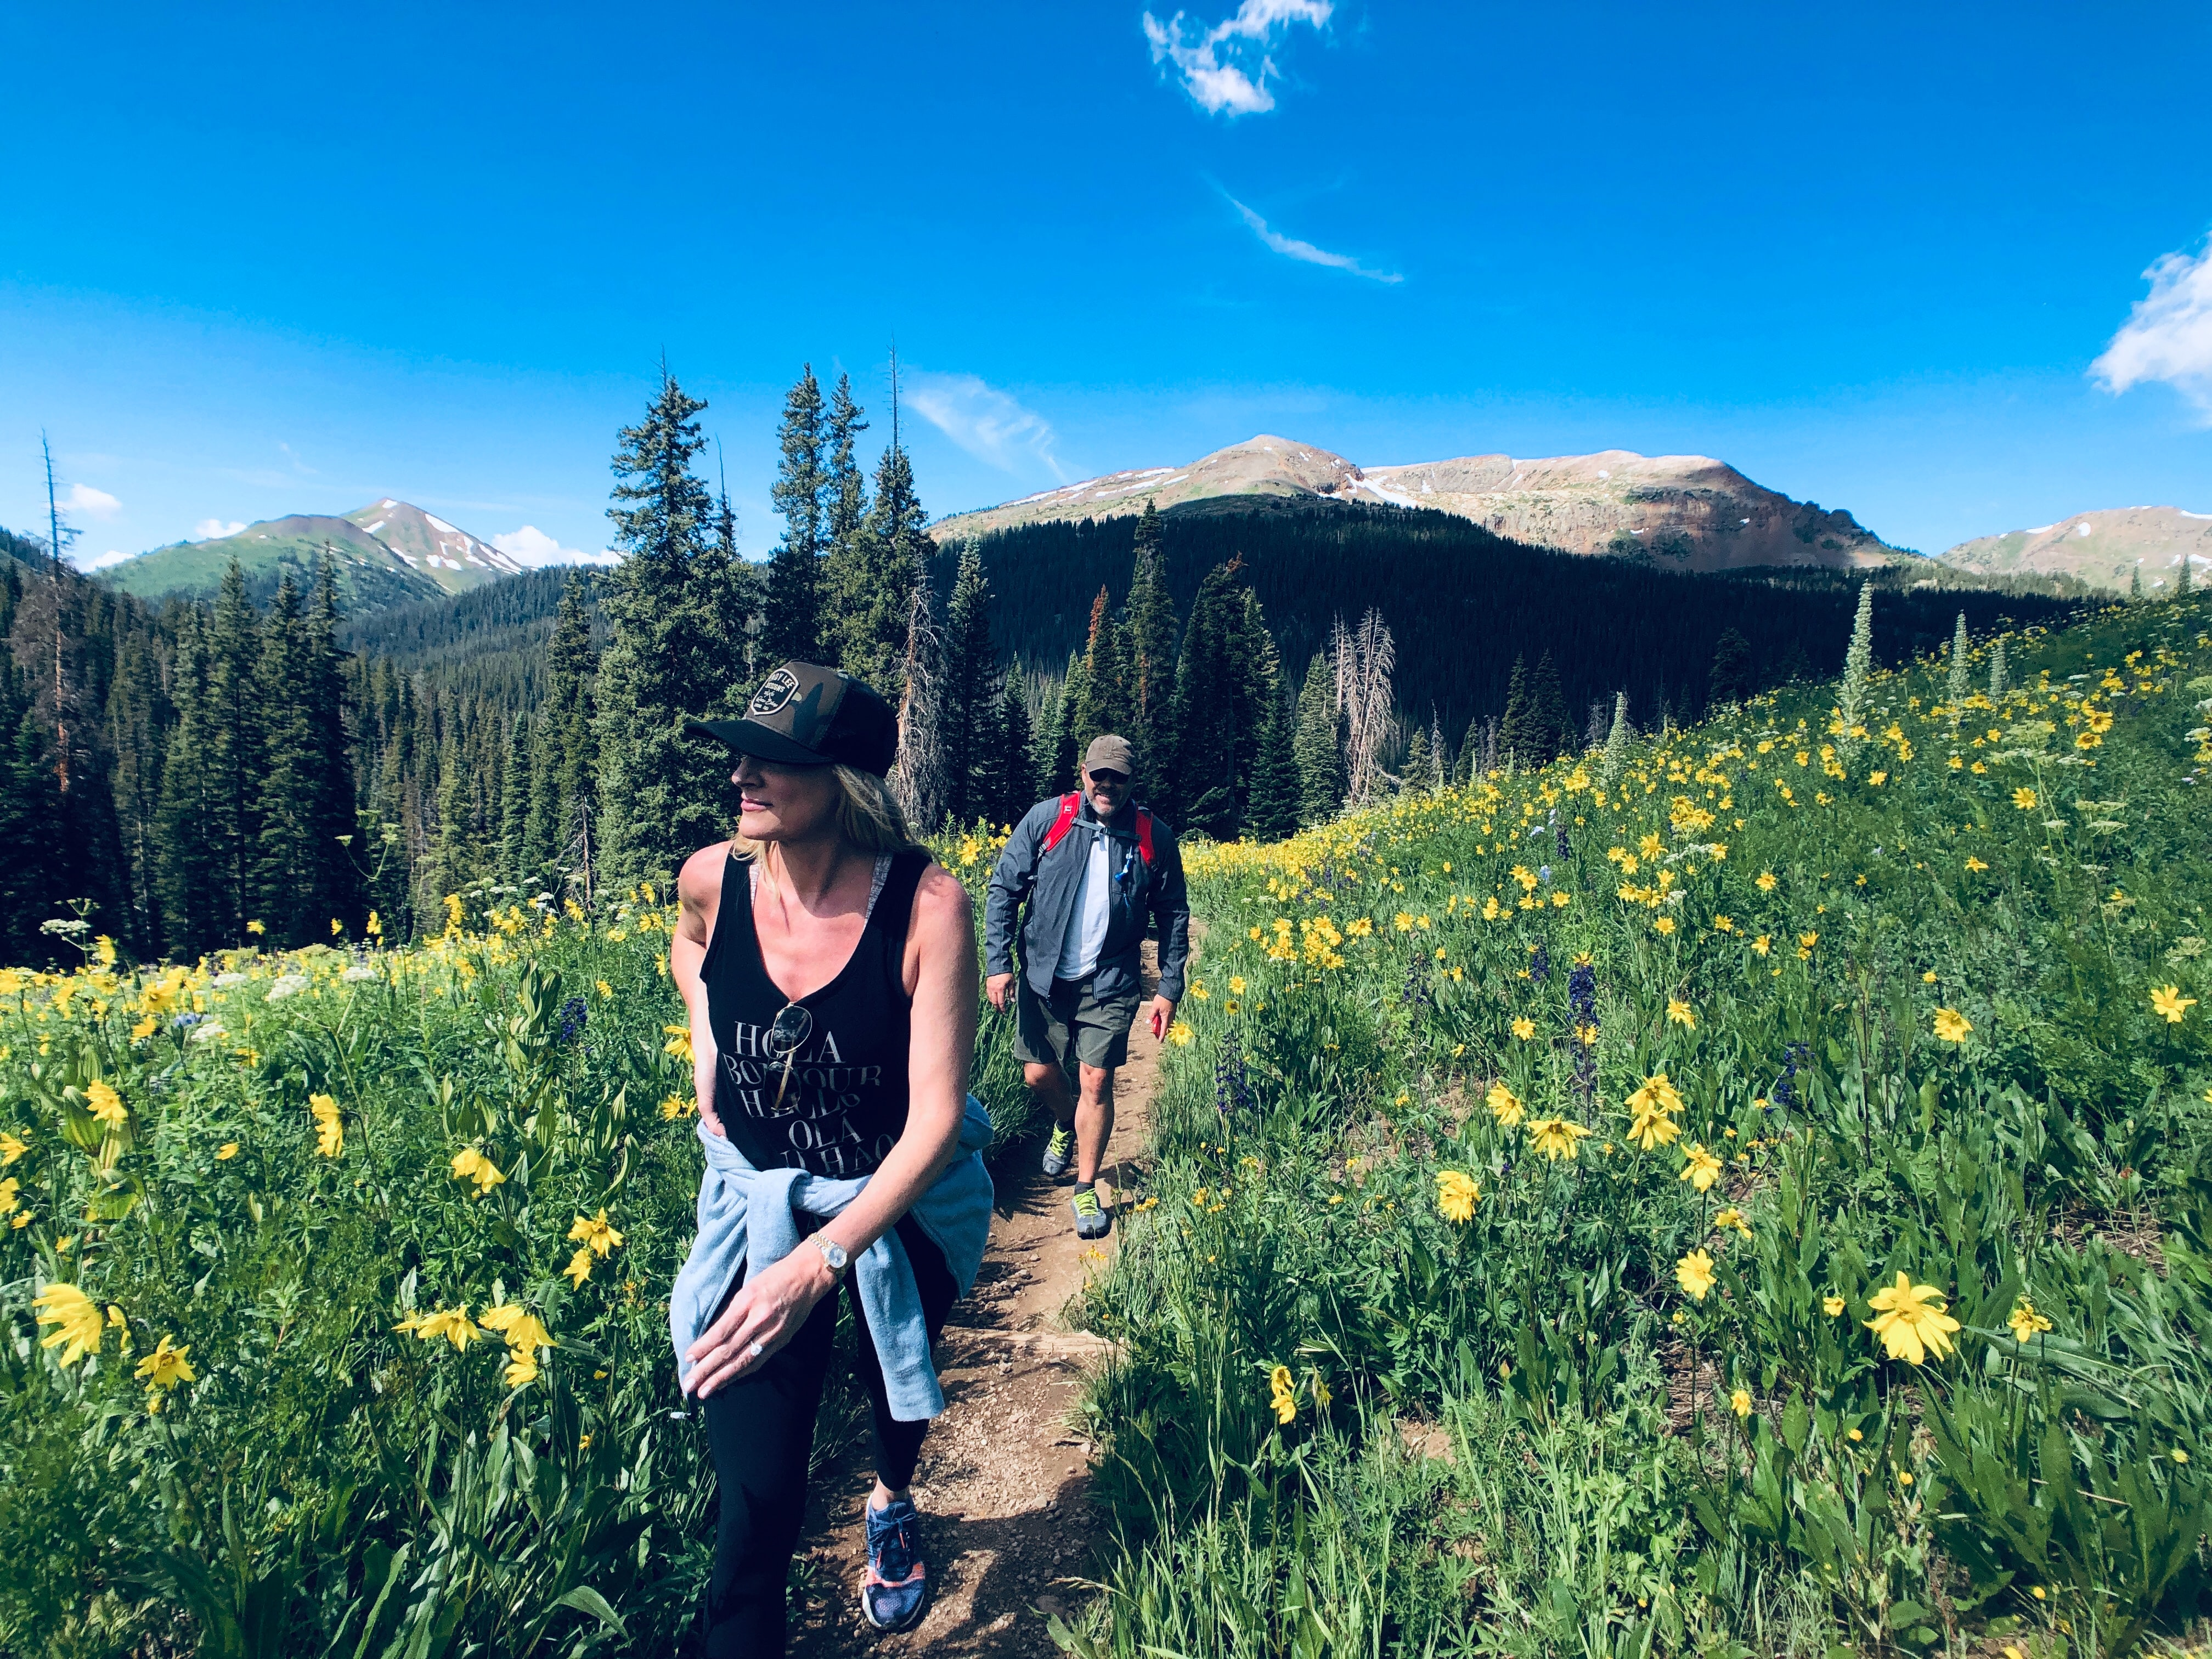 A man and woman hike a mountain trail bordered on both sides by tall daisies.